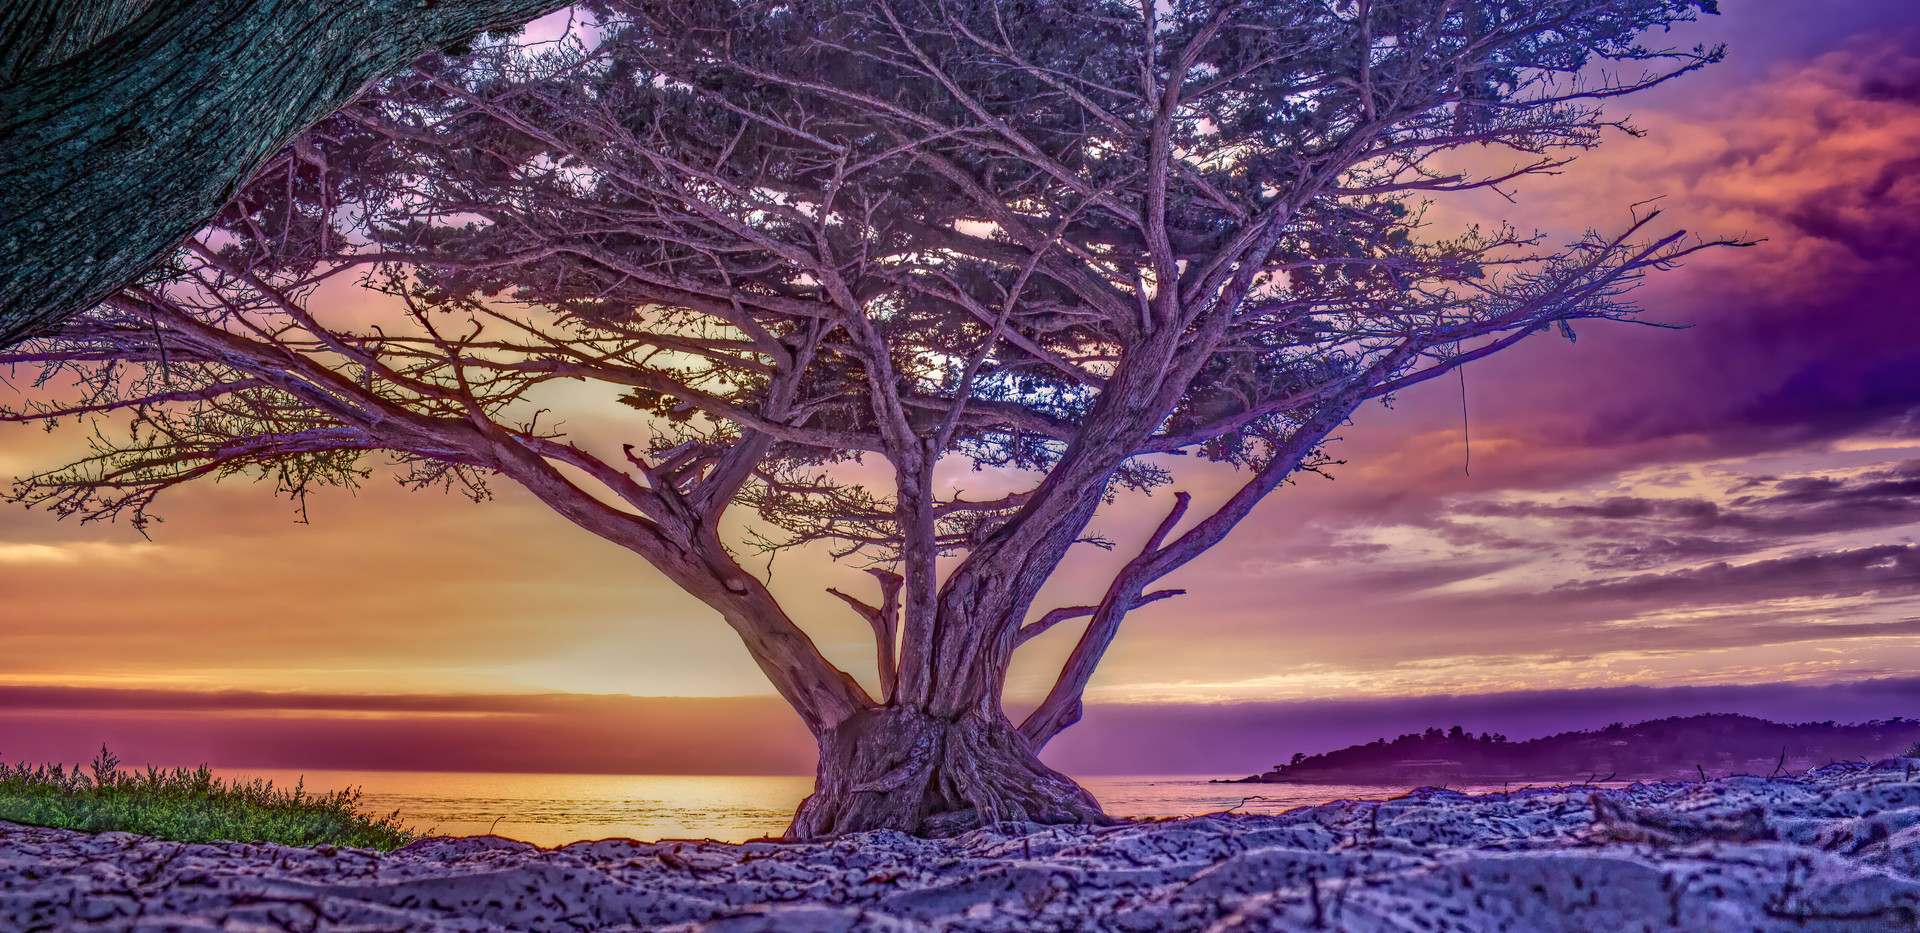 Tree on the White Sand 09-28-15